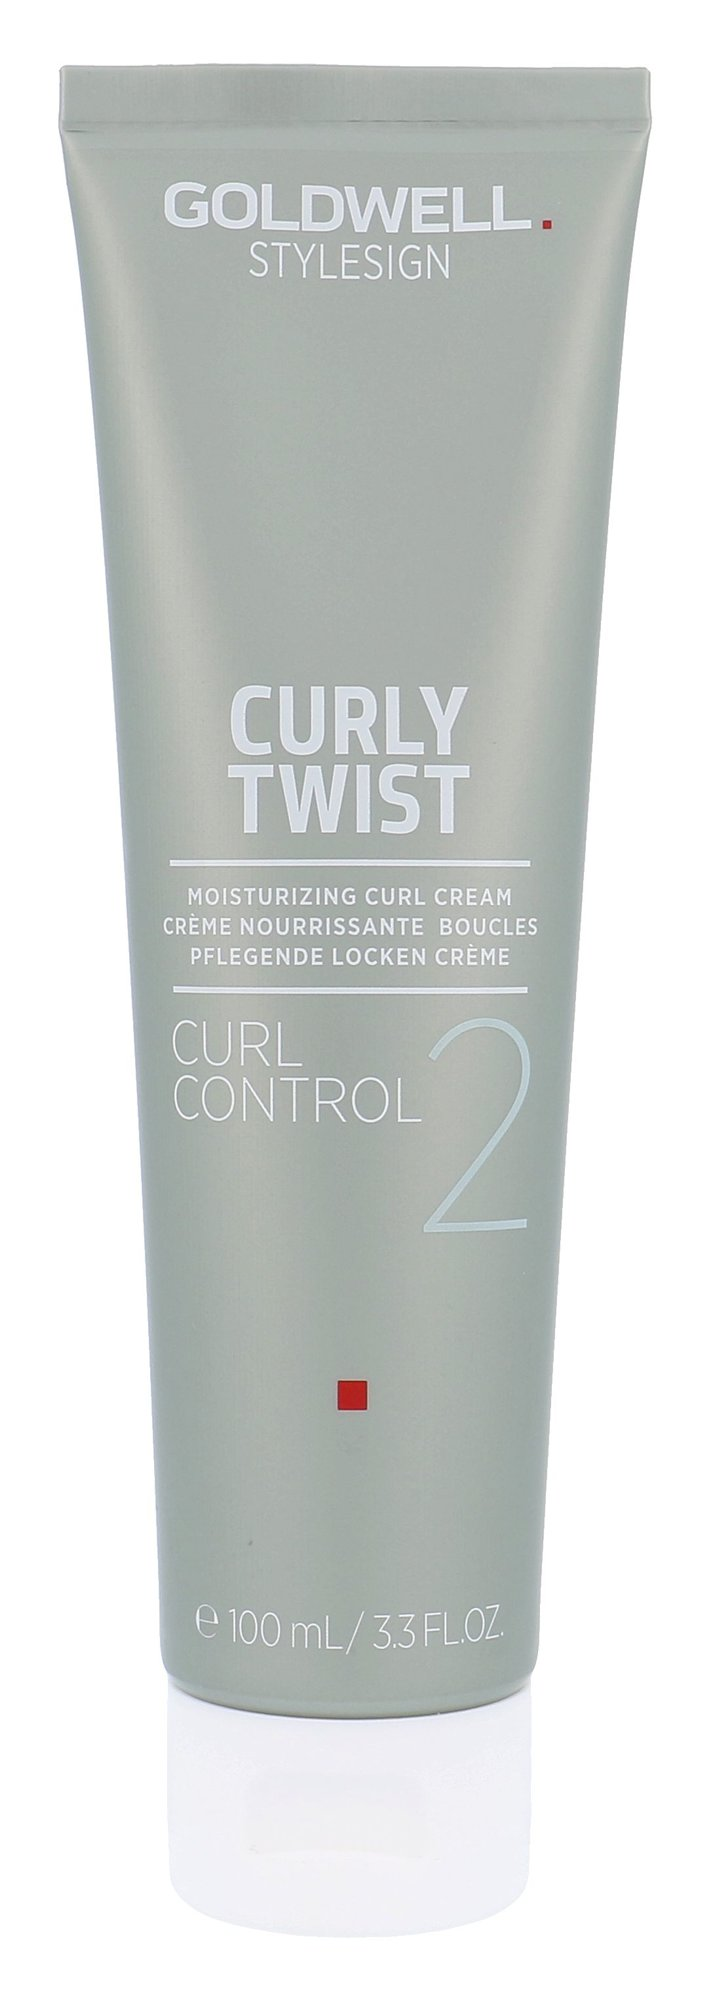 Goldwell Style Sign Cosmetic 100ml  Curly Twist